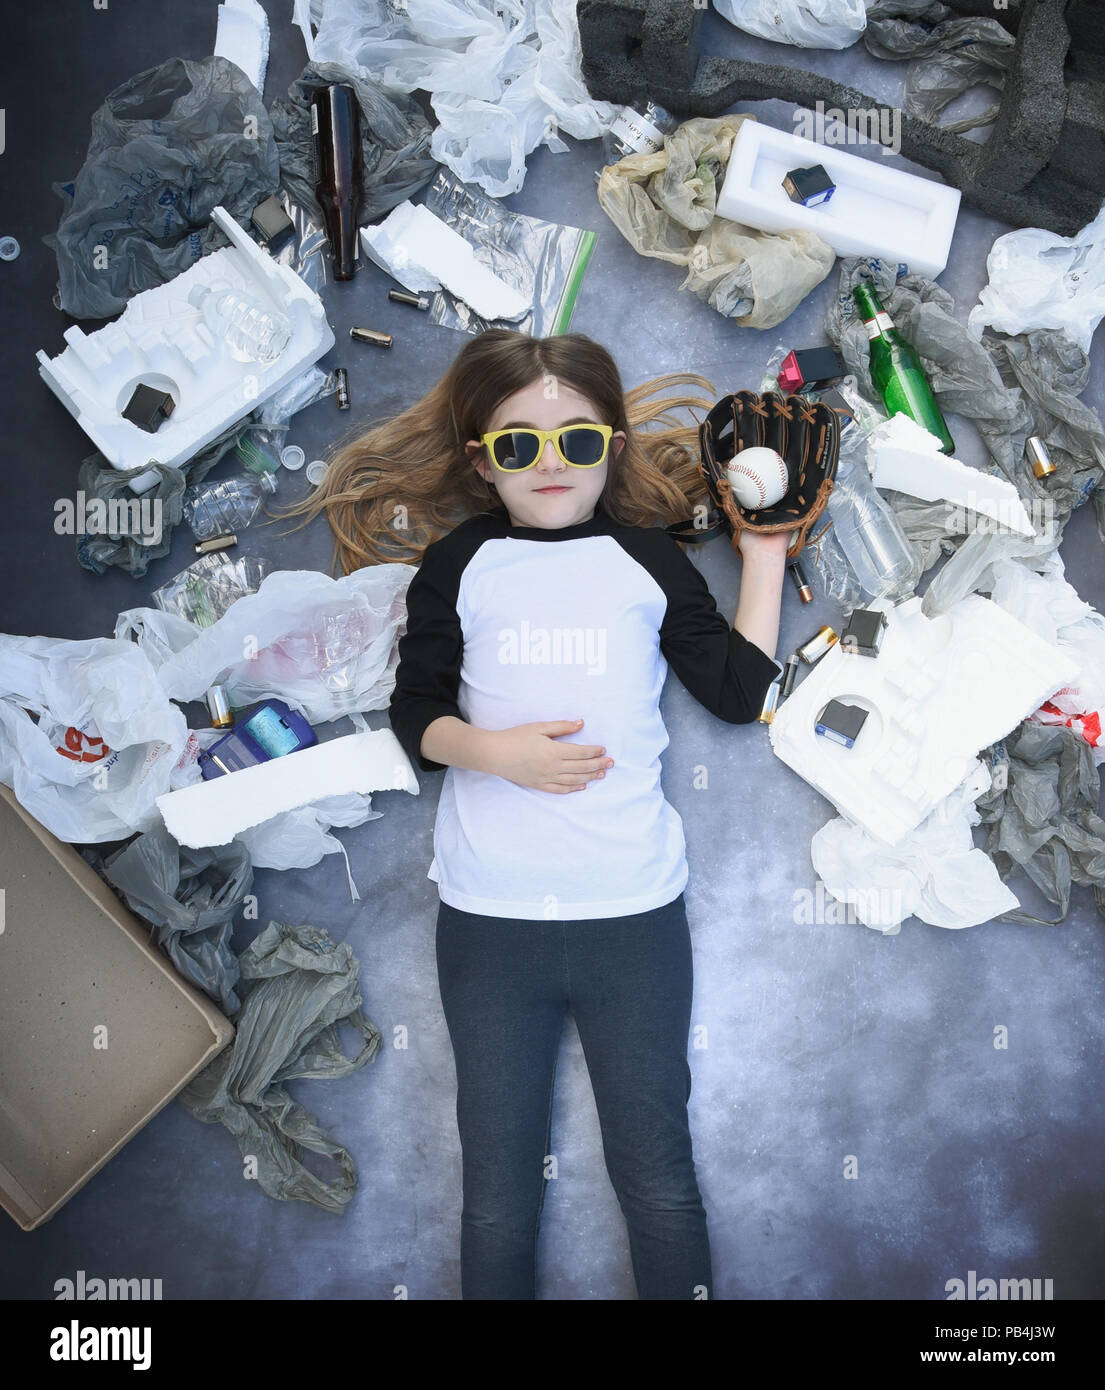 A young child is holding a baseball with garbage waste like plastic bags and non biodegradable products around her for a recycle clean energy concept  - Stock Image